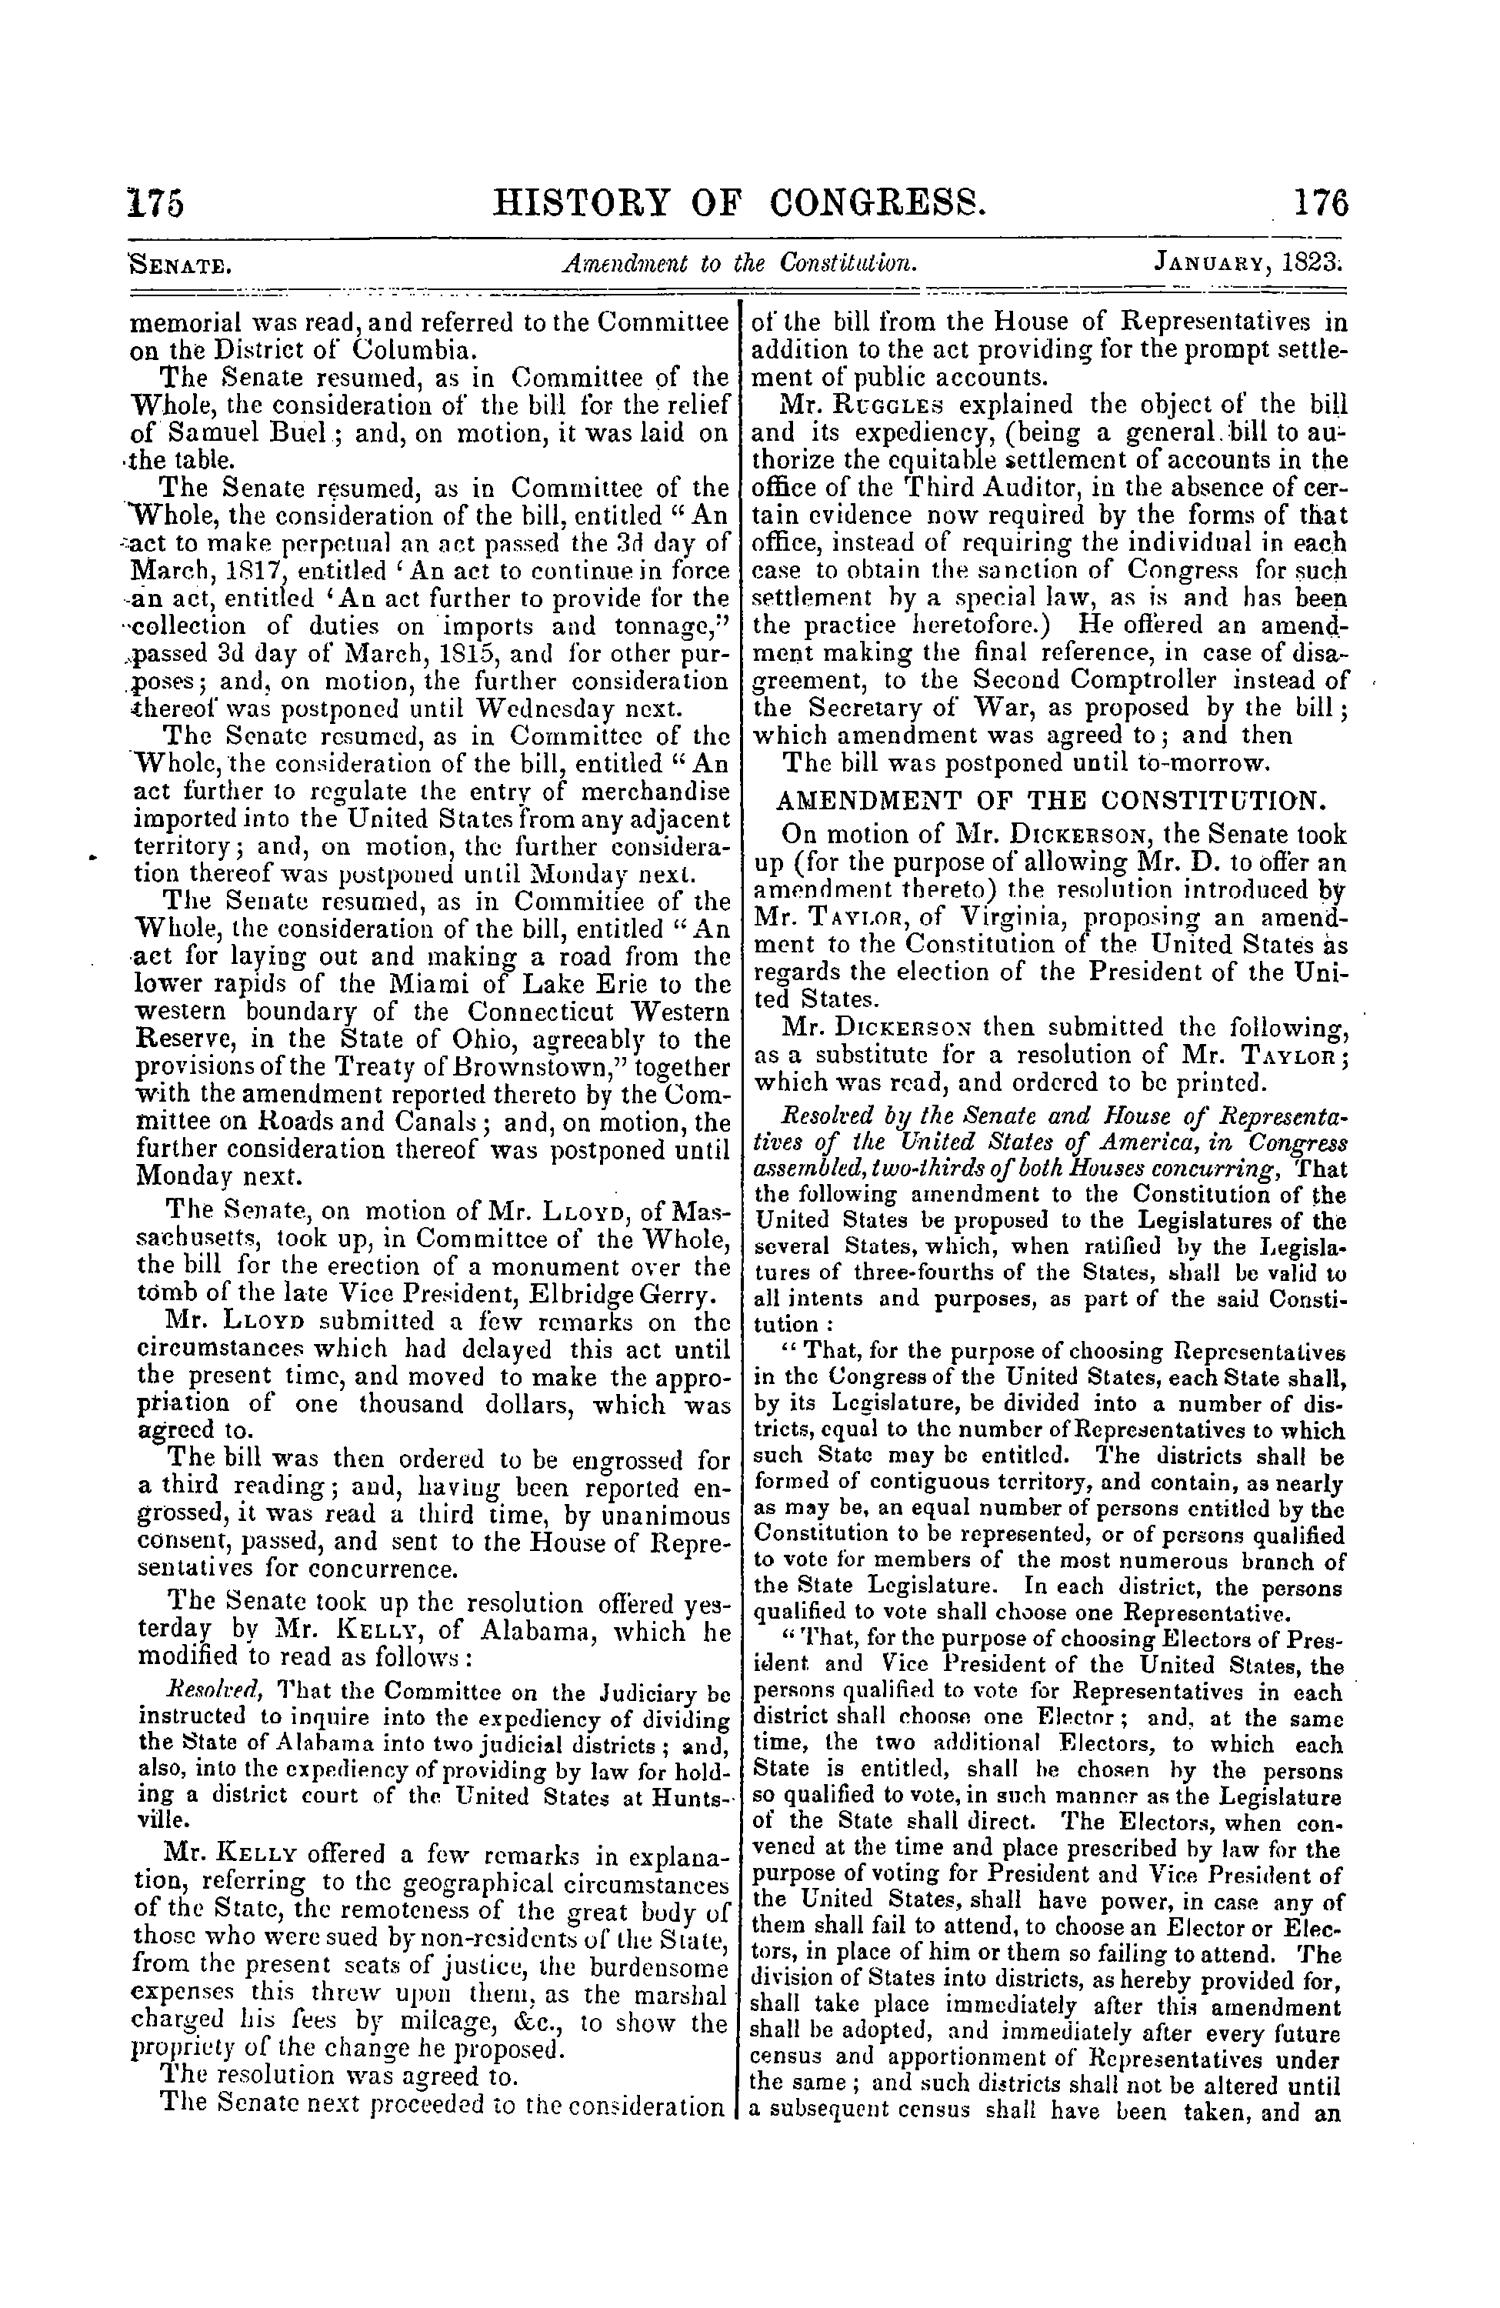 The Debates and Proceedings in the Congress of the United States, Seventeenth Congress, Second Session                                                                                                      175